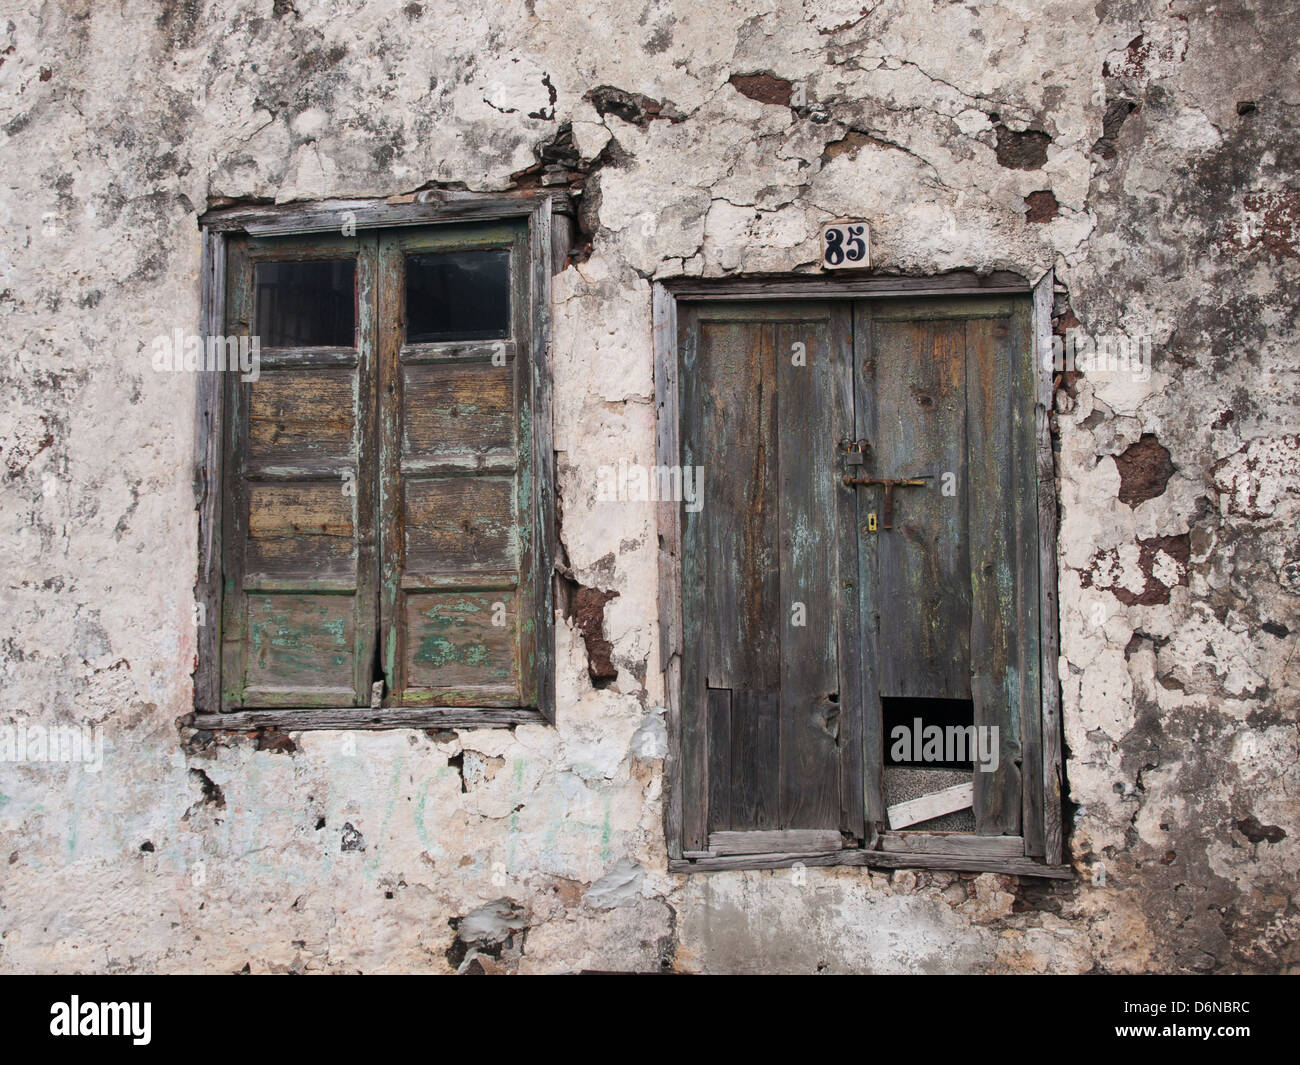 Closeup Of Old House Plaster Wall Windows With Shutter No 85 In